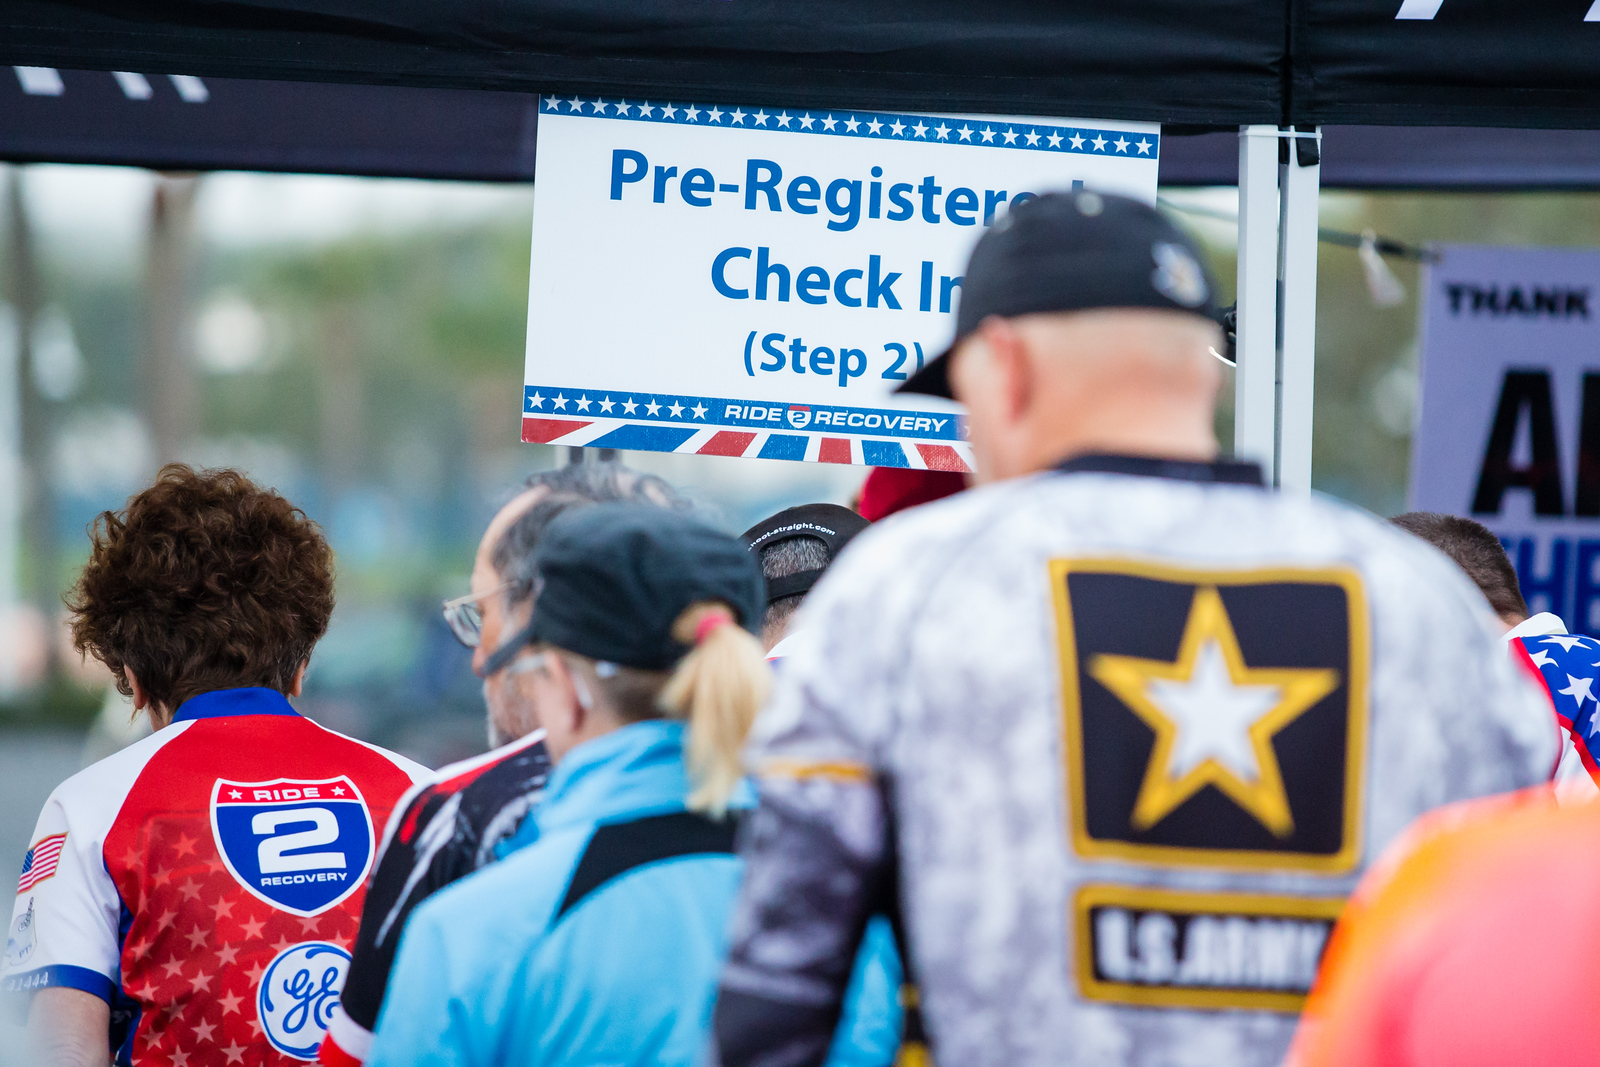 Cyclists attend the 2018 Honor Ride Florida in St. Petersburg, Fl. Project Hero, a 501(c)3 non-profit organization, is dedicated to helping veterans and first responders affected by PTSD, TBI, illness, and injury achieve rehabilitation, recovery and resilience in their daily lives. Photo by Mary Holt